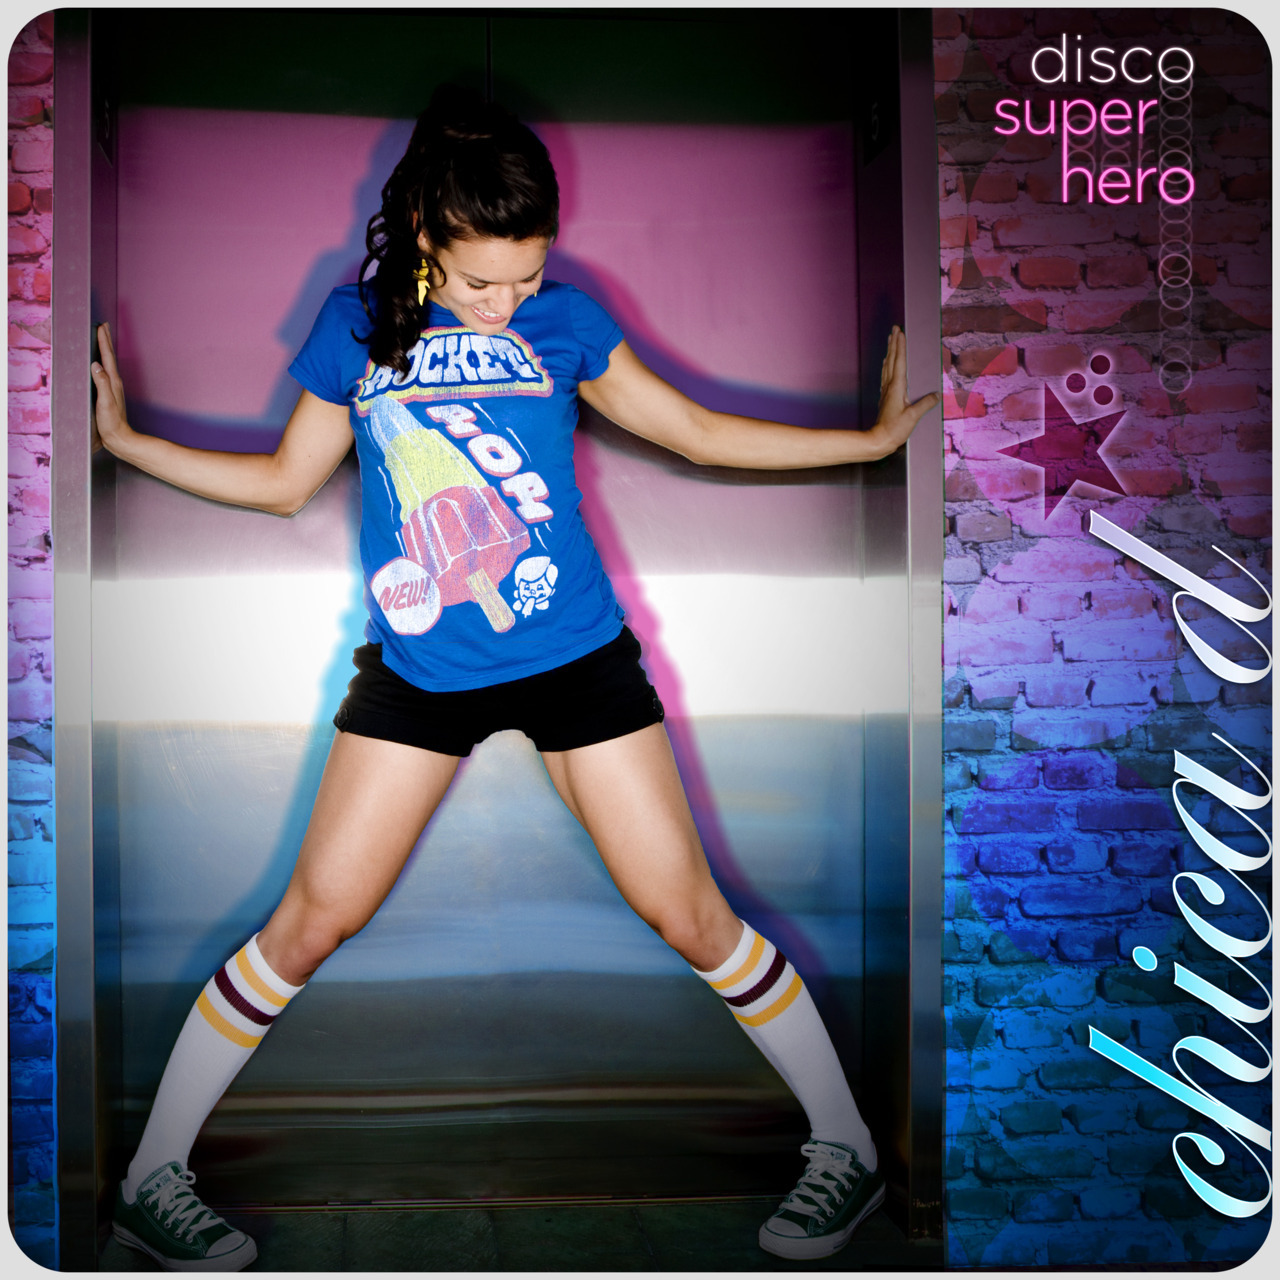 """Disco Superhero"" Cover!! Look it up on iTunes!! :) photo: michaelbeckphotography.com design: pete malachowsky"